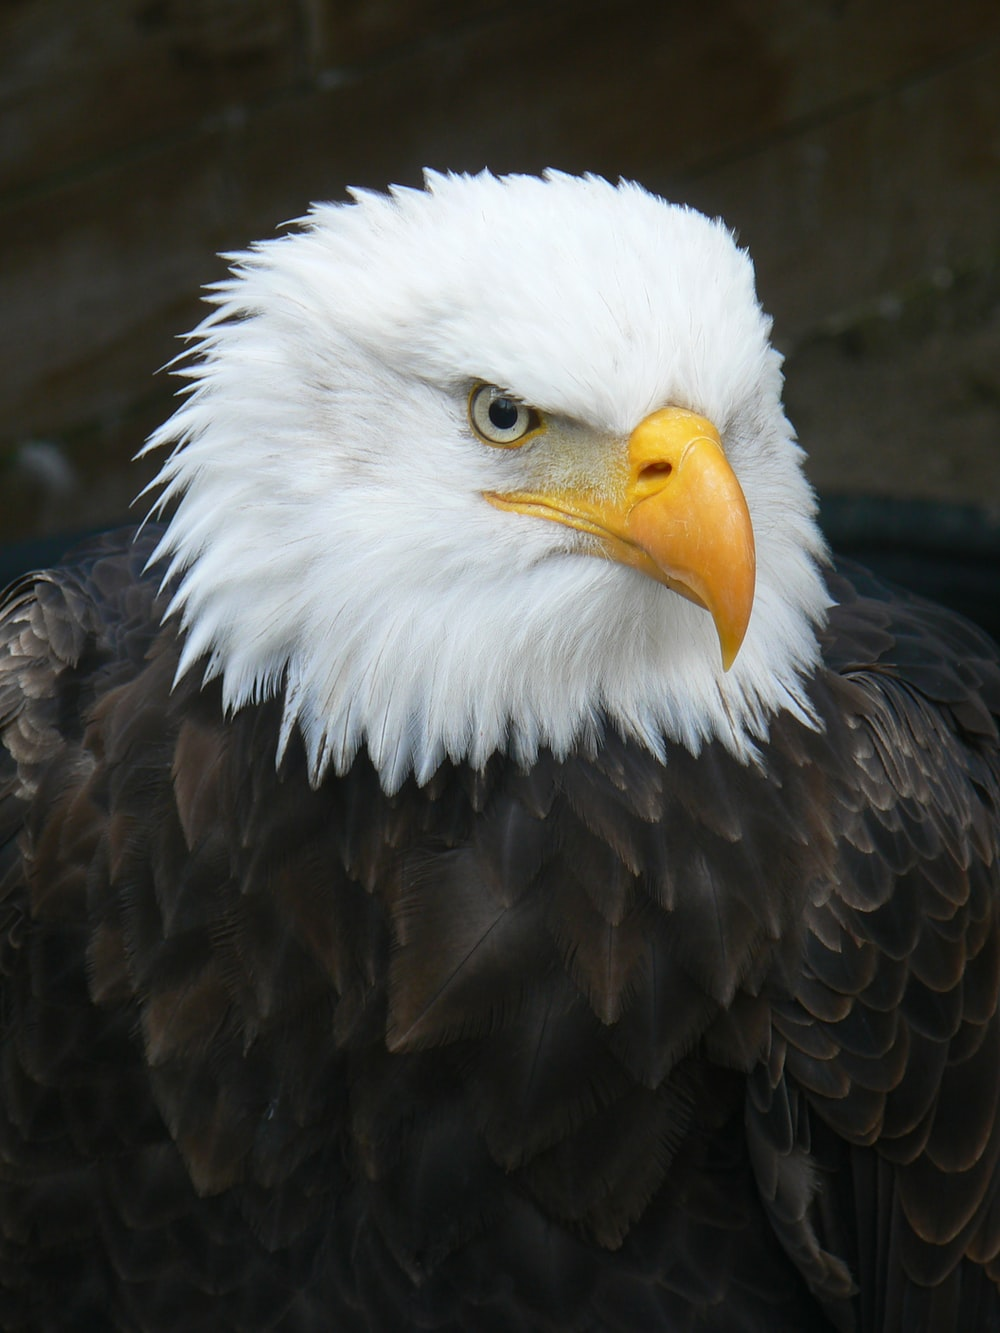 black and white eagle in close up photography